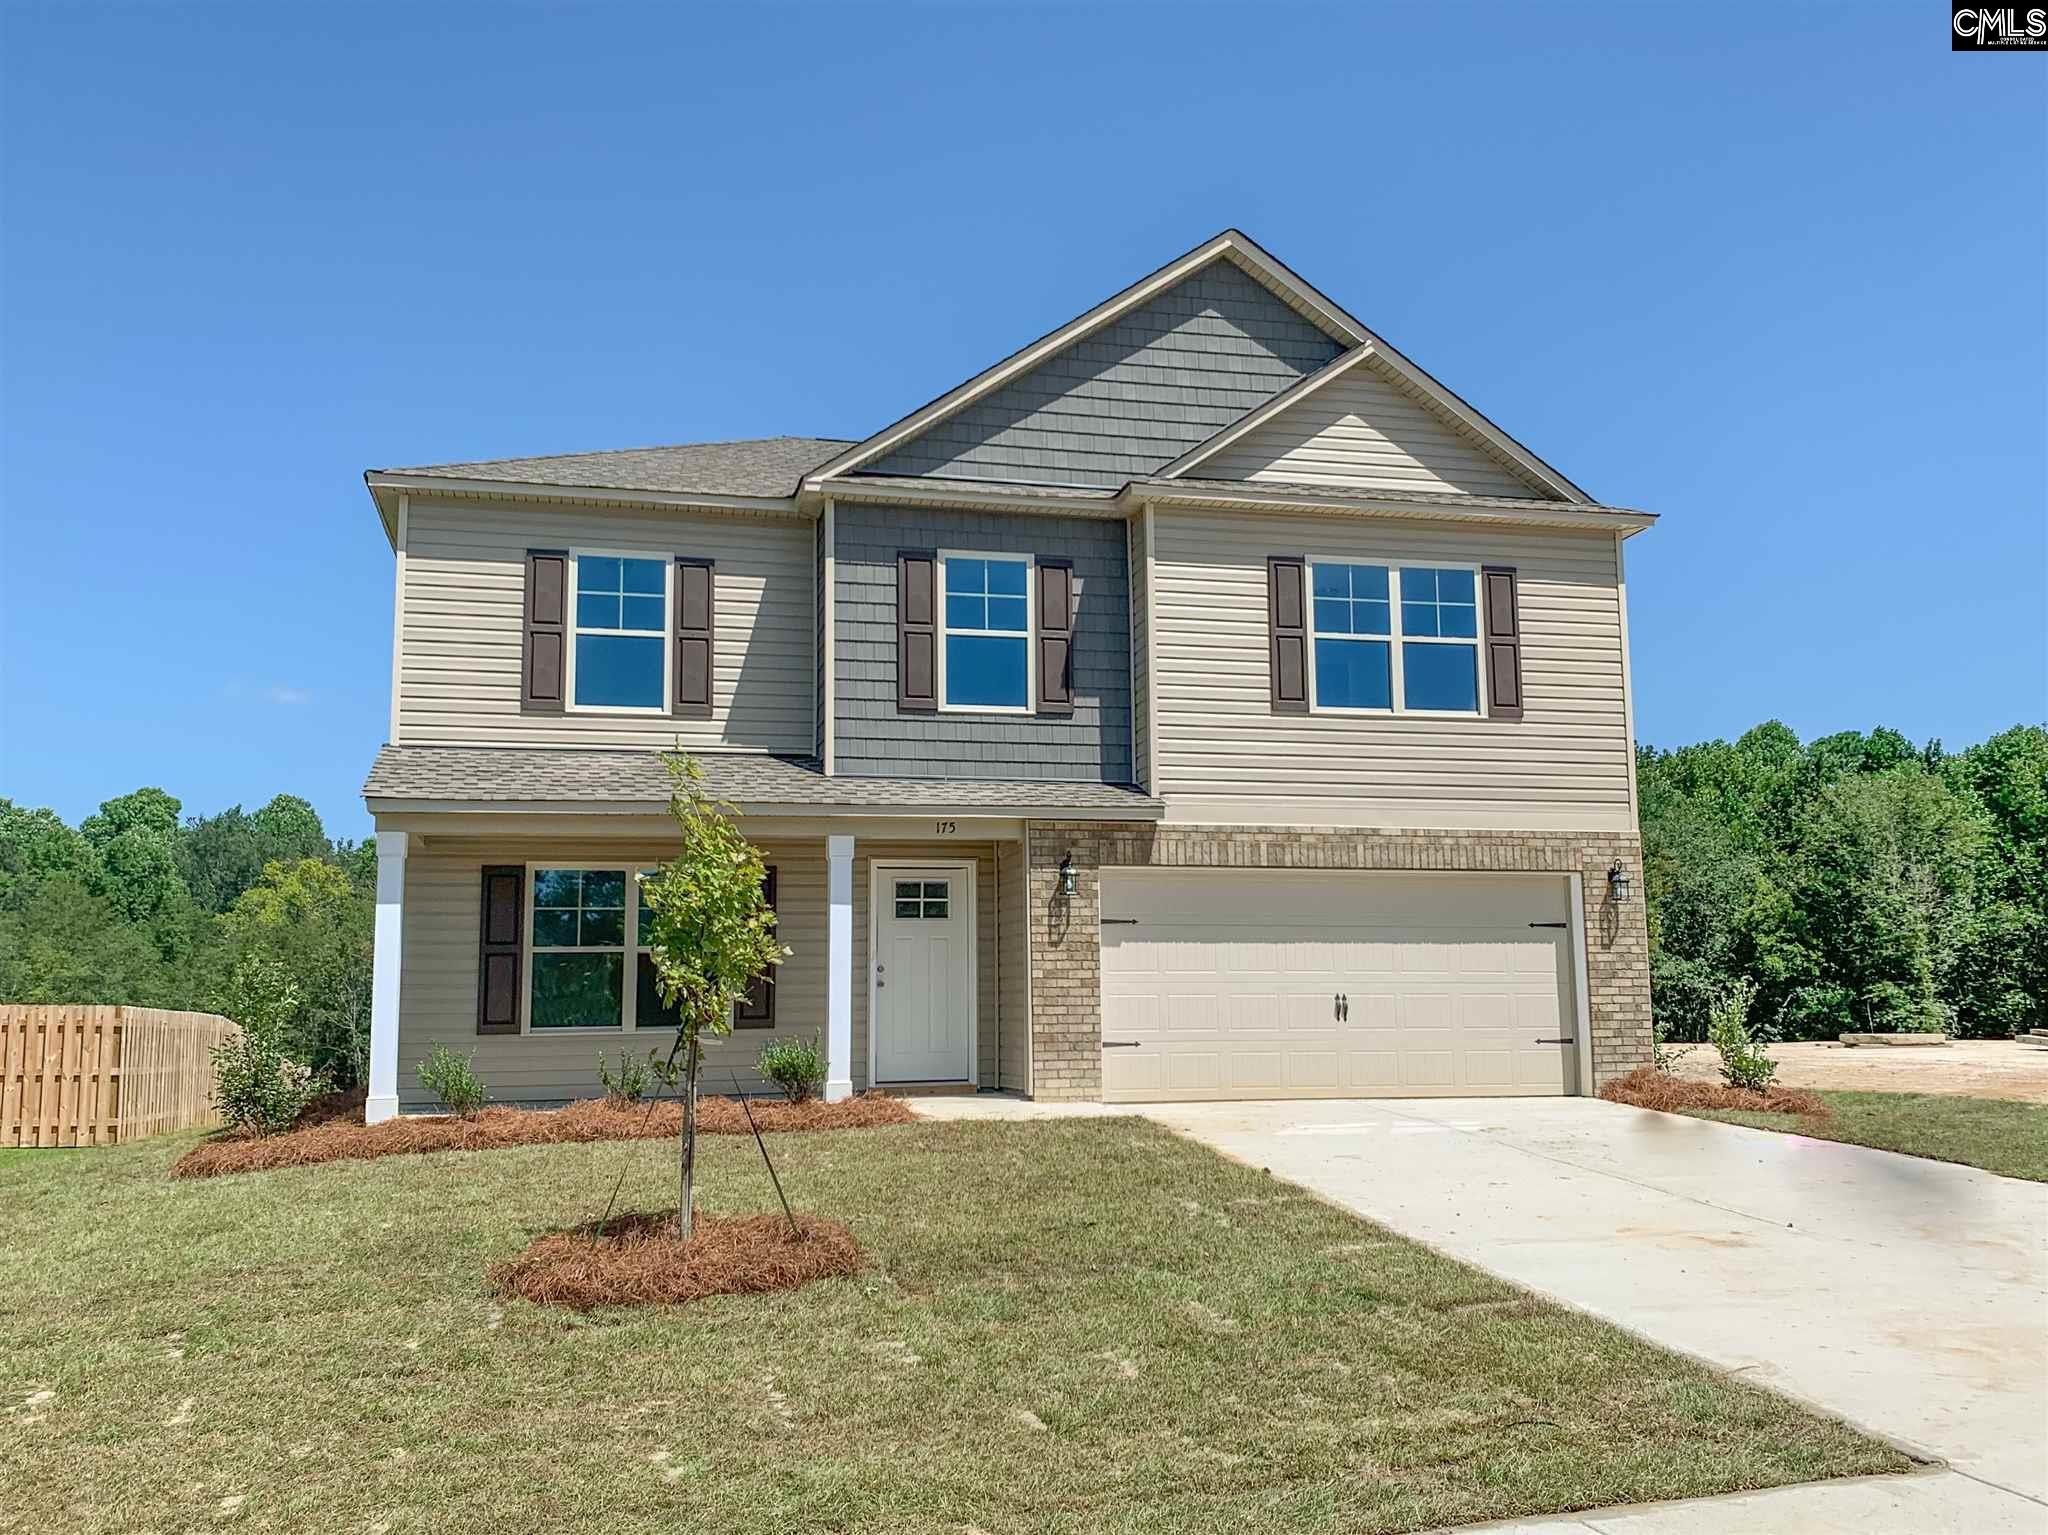 240 Drummond Way Lexington, SC 29072